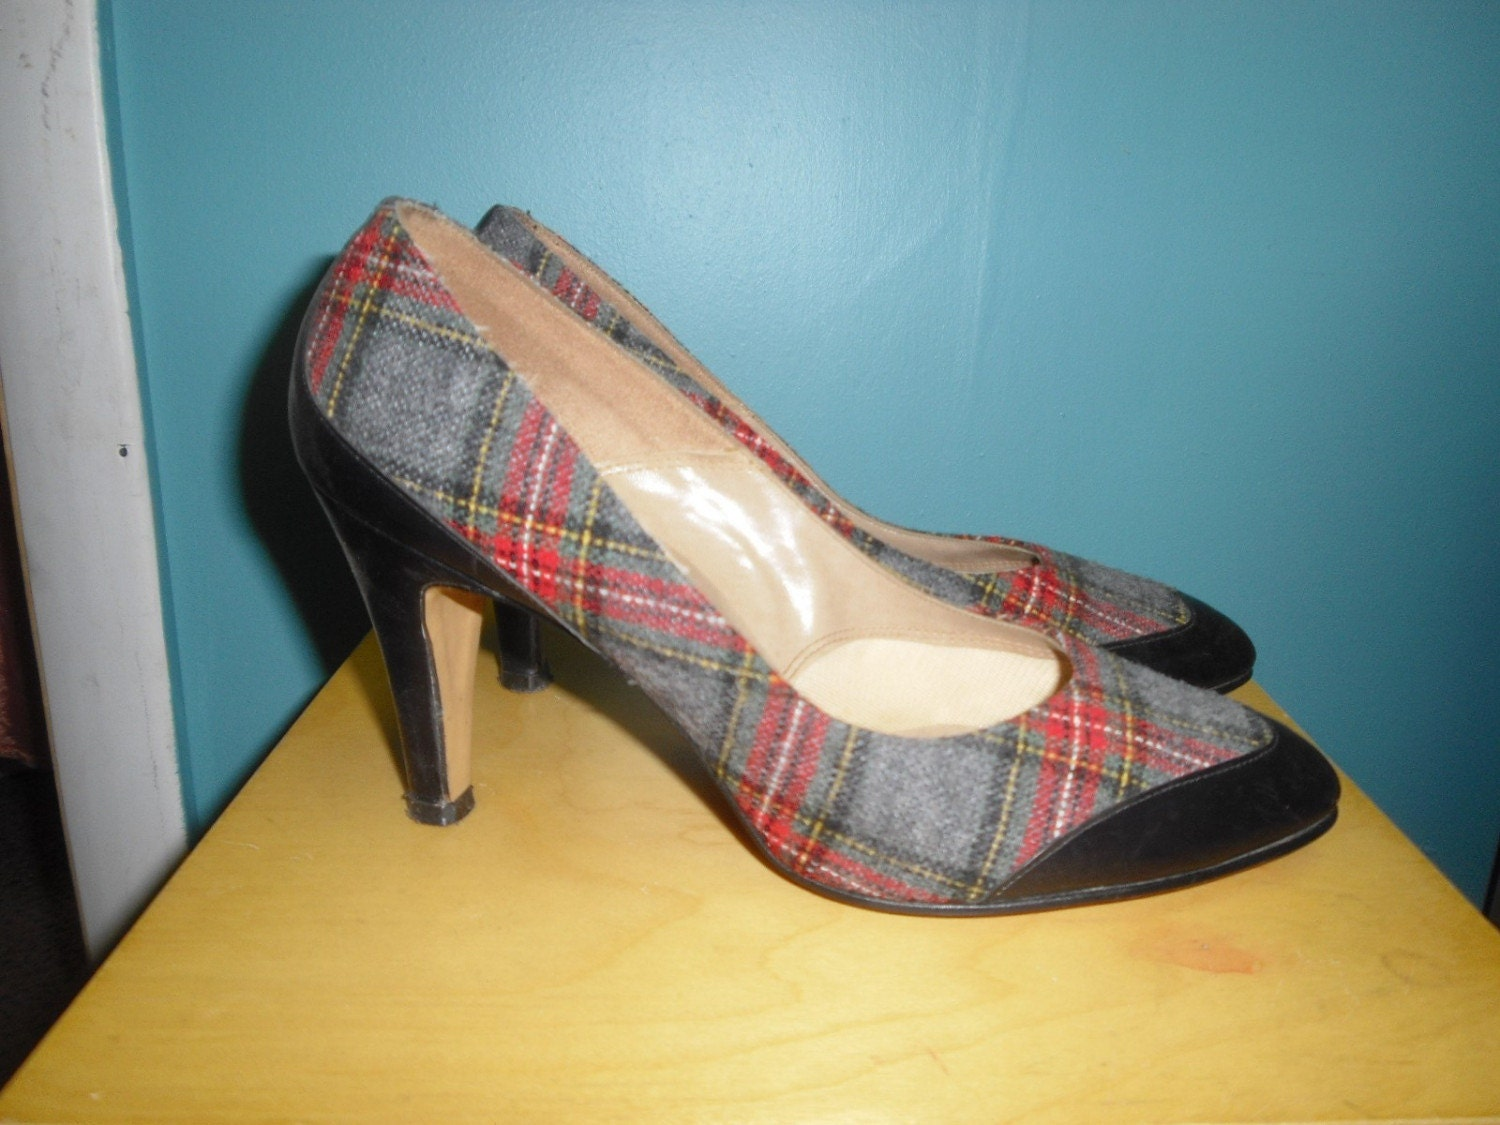 1950s JOHANSEN Black Leather and Red Wool Plaid Pumps Shoes